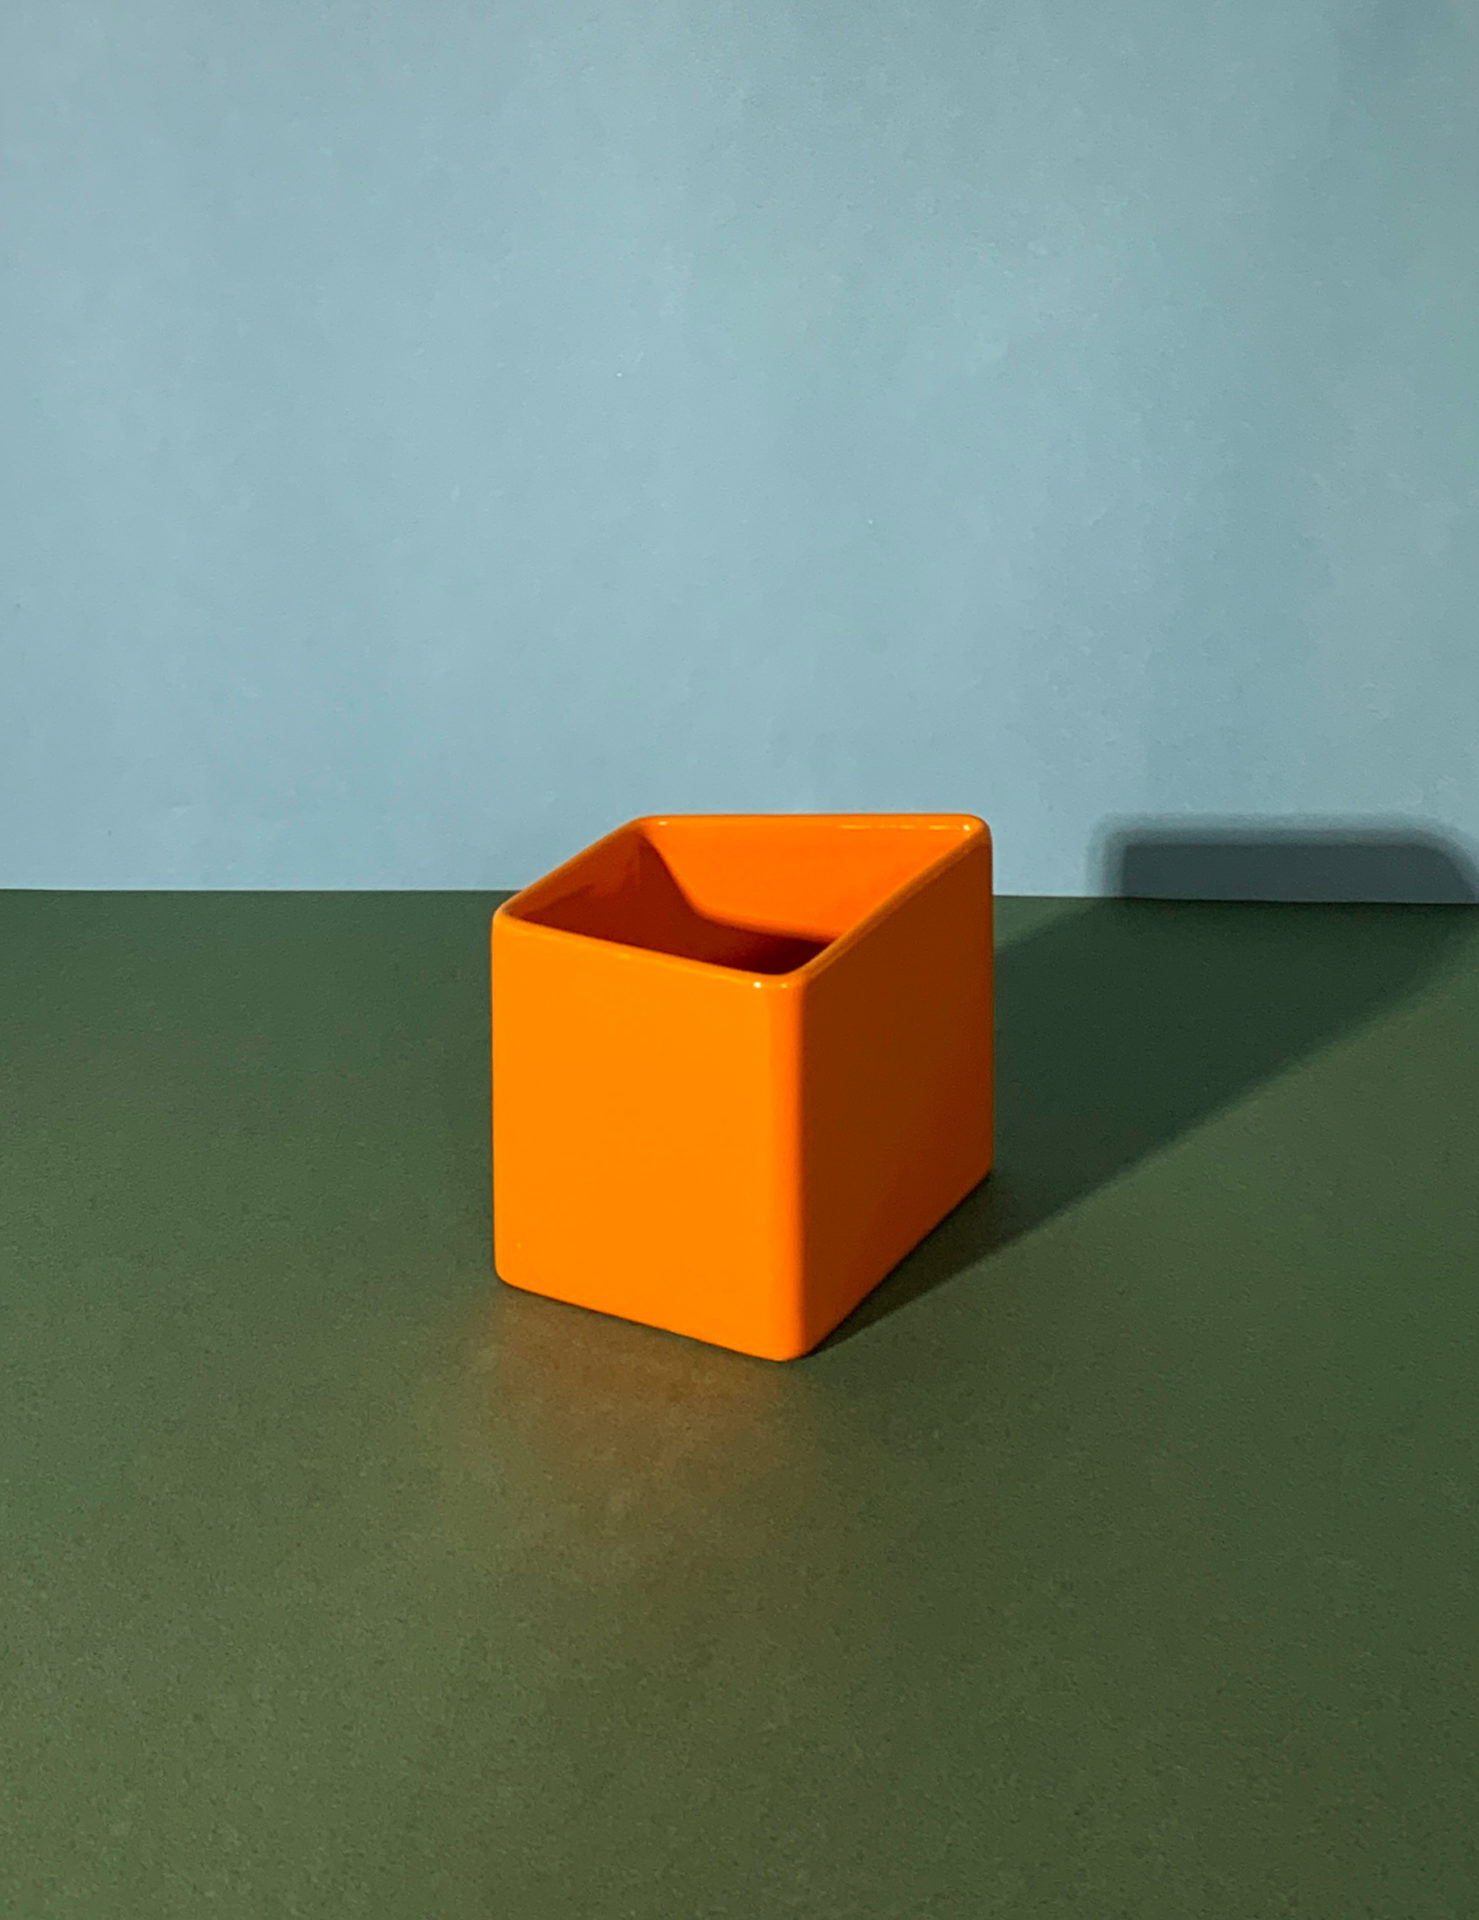 Vase orange par Aldo Cotti